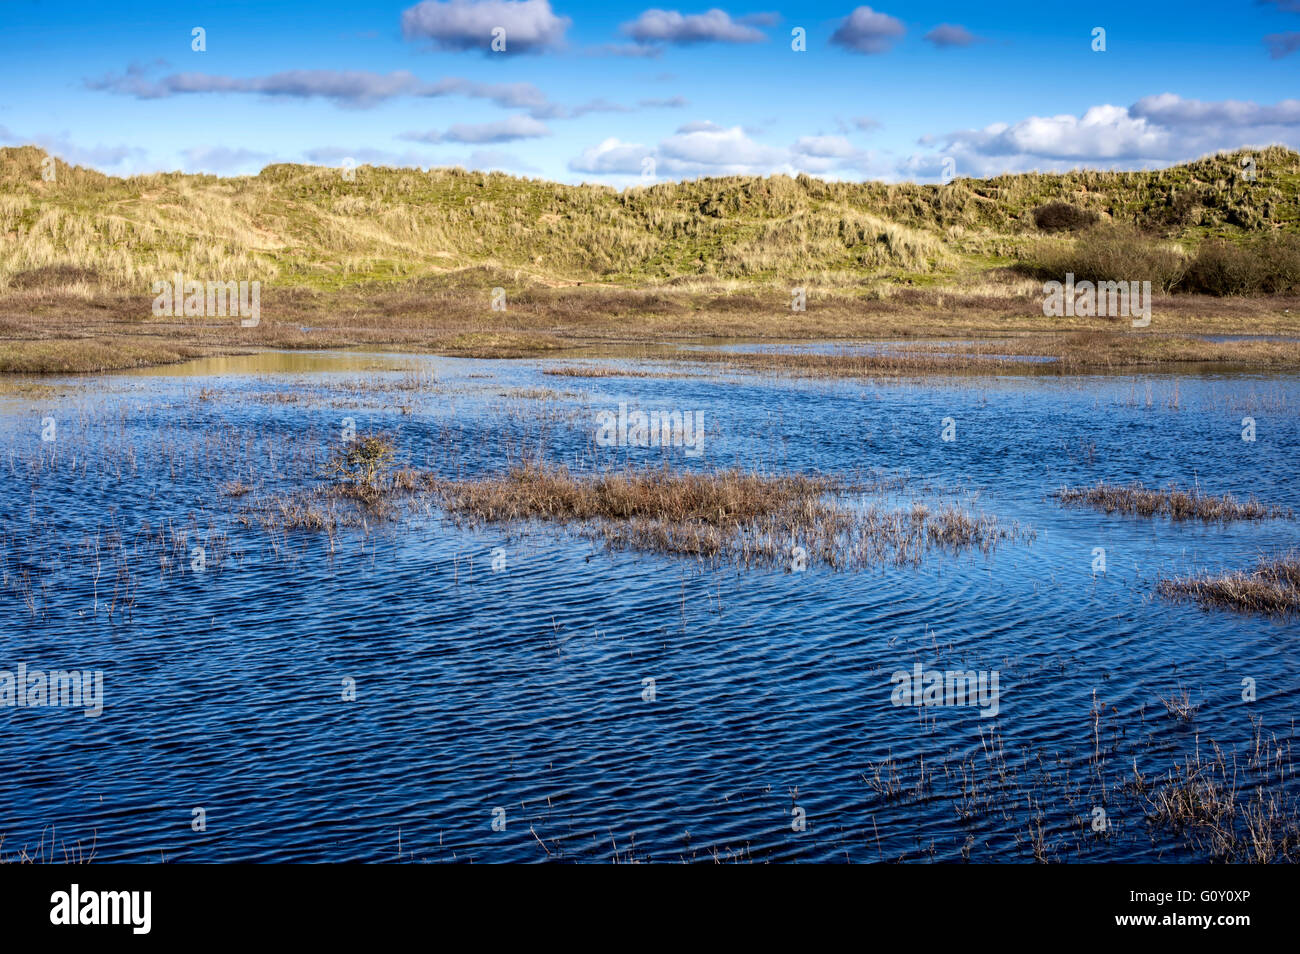 A winter dune slack. A temporary shallow pool the size and depth depends on rainfall. - Stock Image